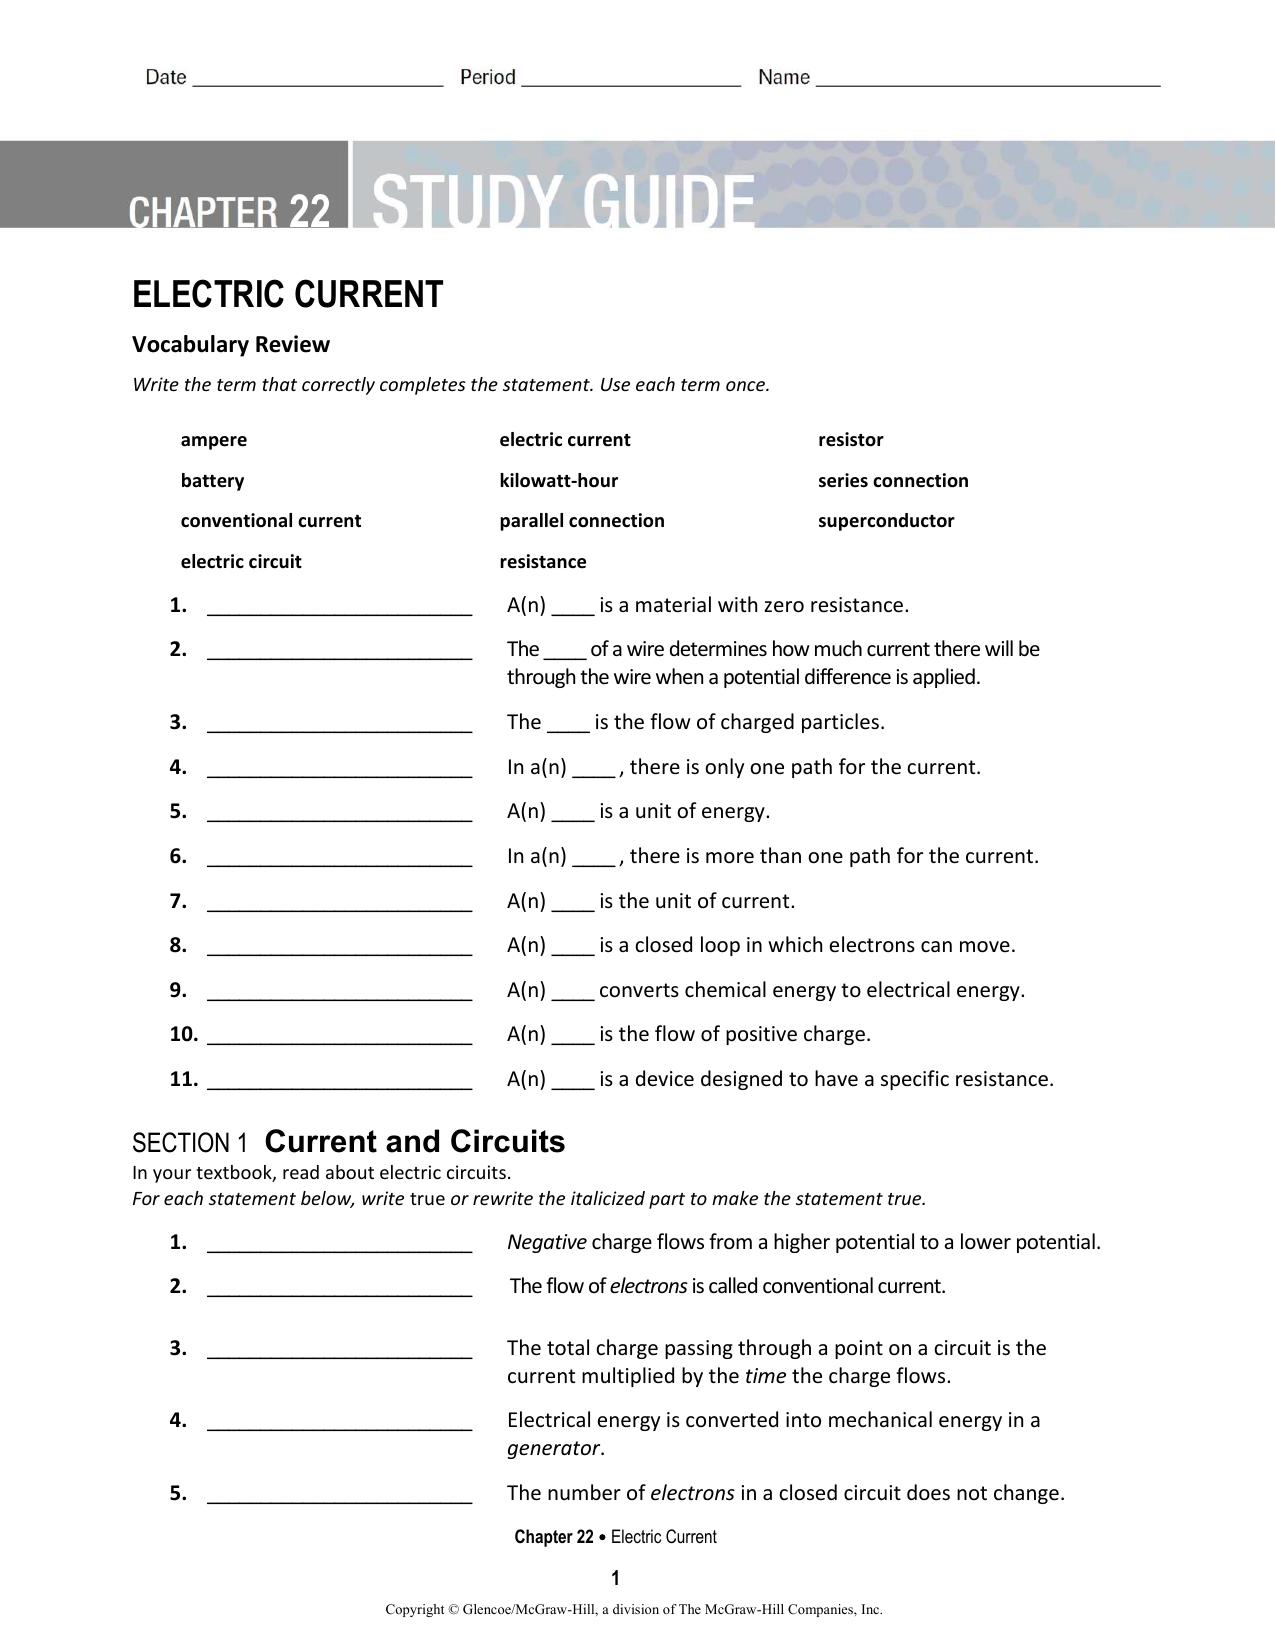 Ch 22 Electric Current